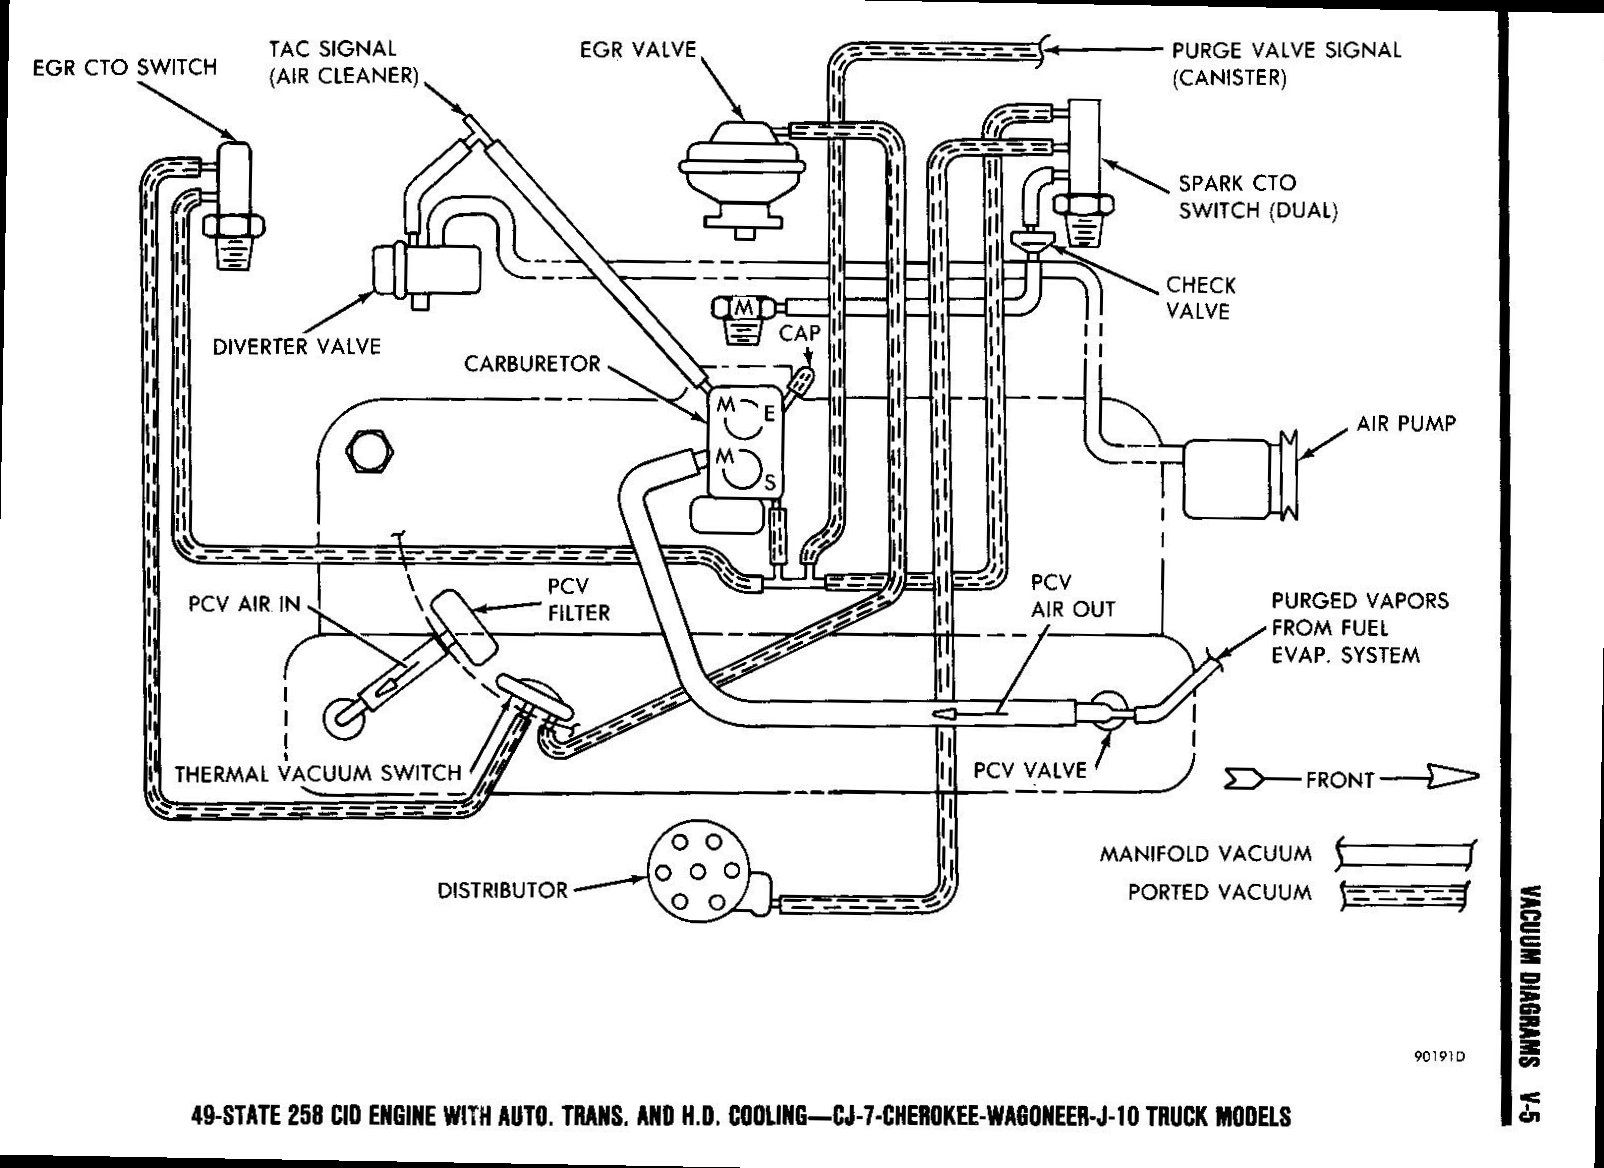 cj5 258 vacuum diagram! - jeepforum.com | jeep | diagram ... jeep cj5 304 vacuum diagram #3